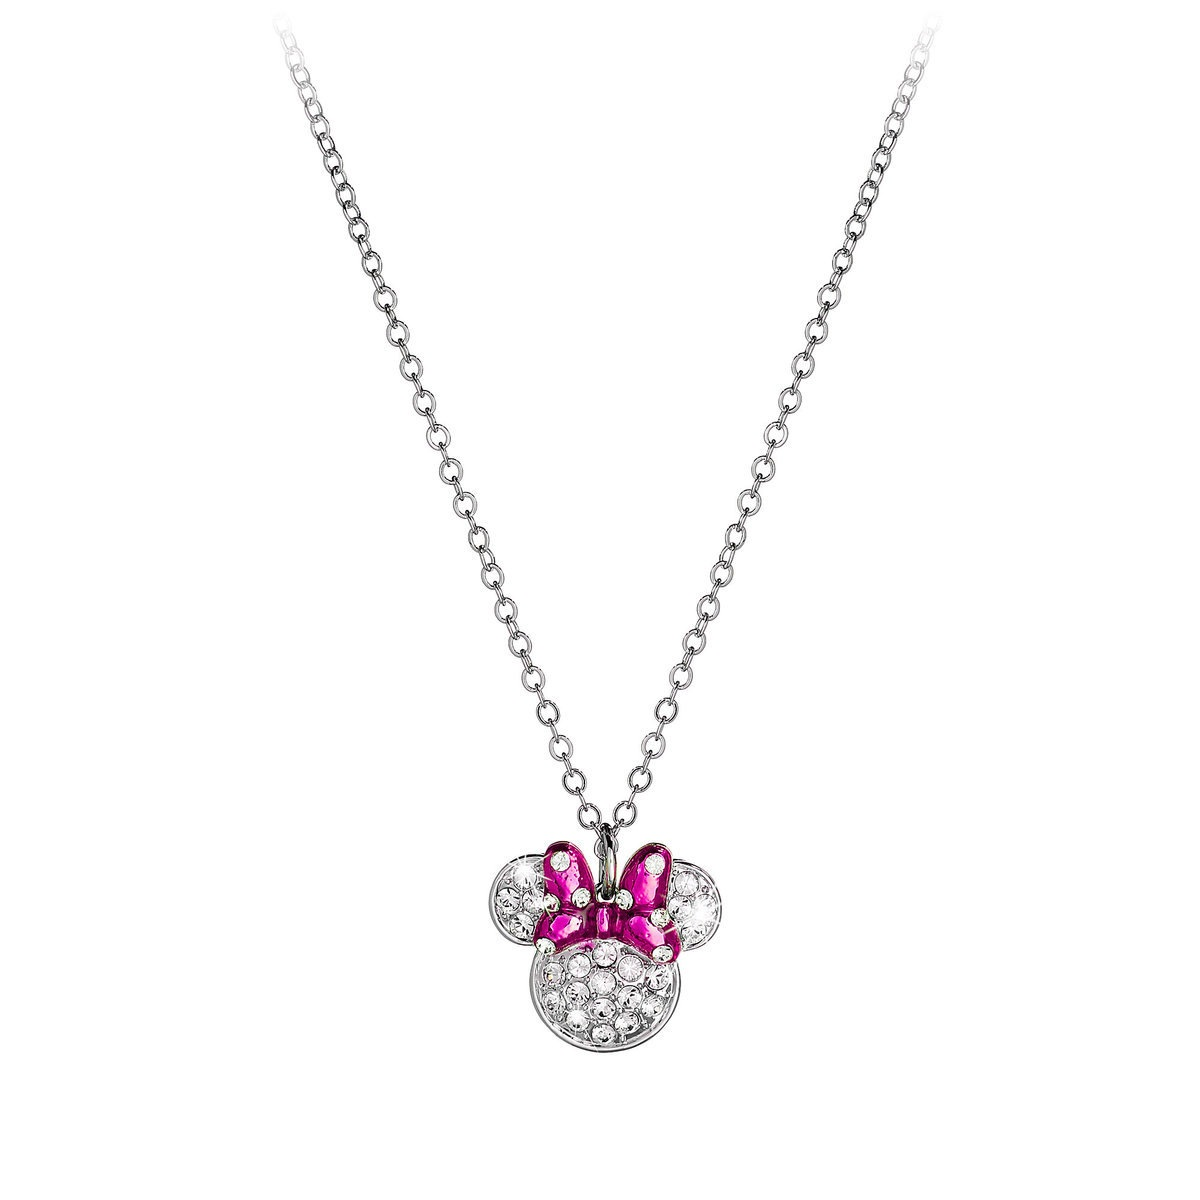 26b4c1b23112d Disney Arribas Necklace - Minnie Mouse Bow Icon